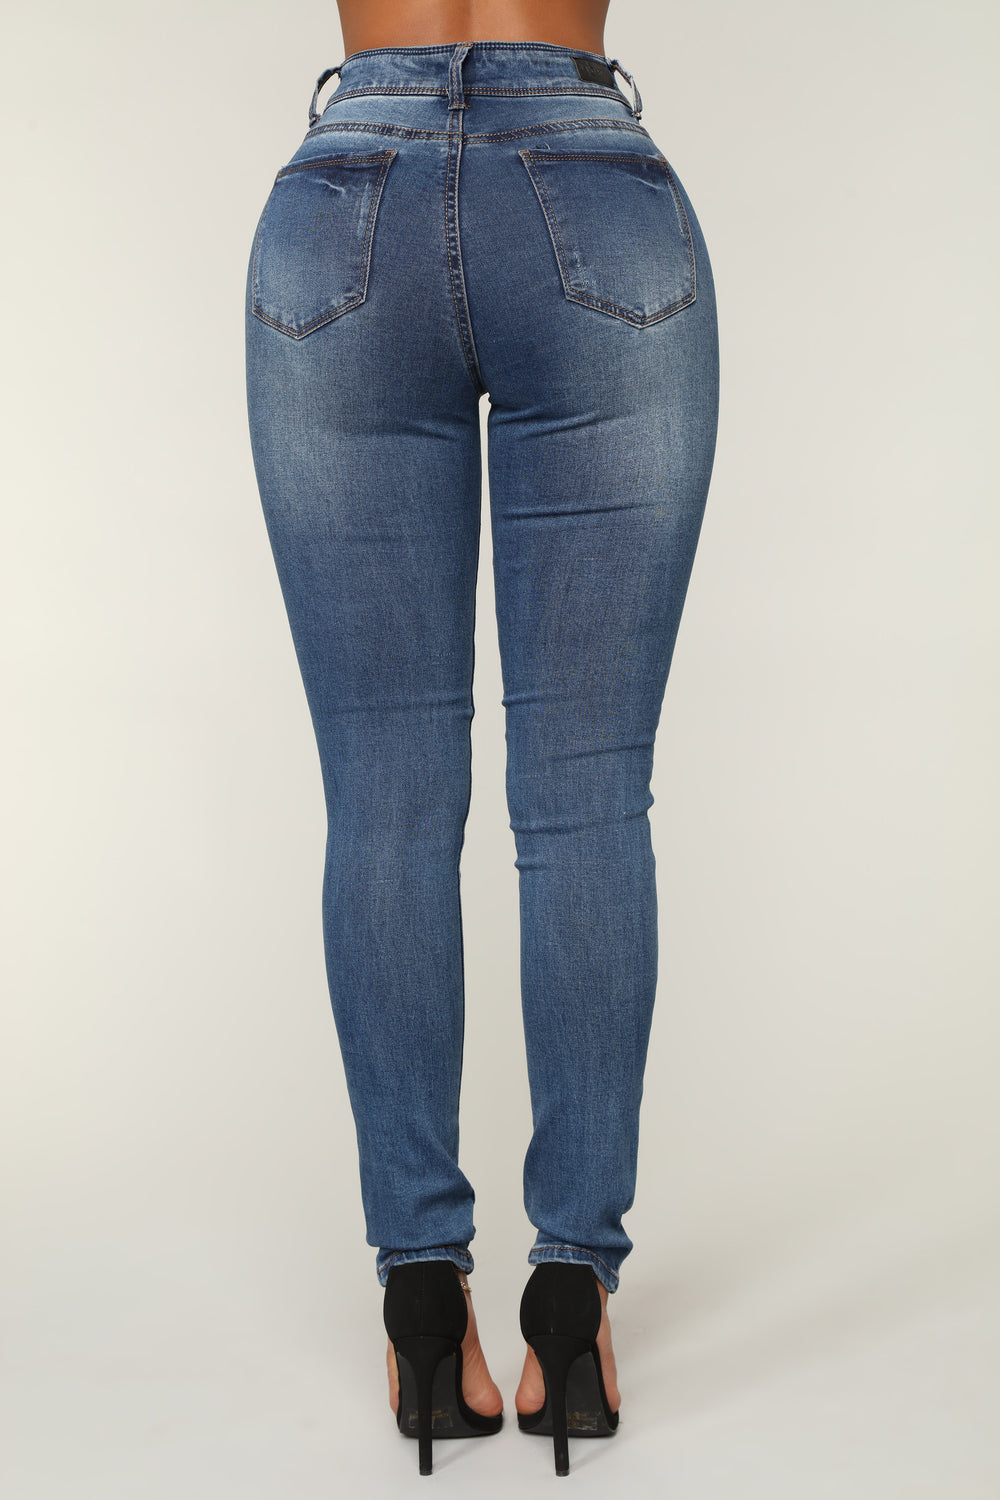 Middle of the Dance Floor Skinny Jeans - Medium Blue Wash